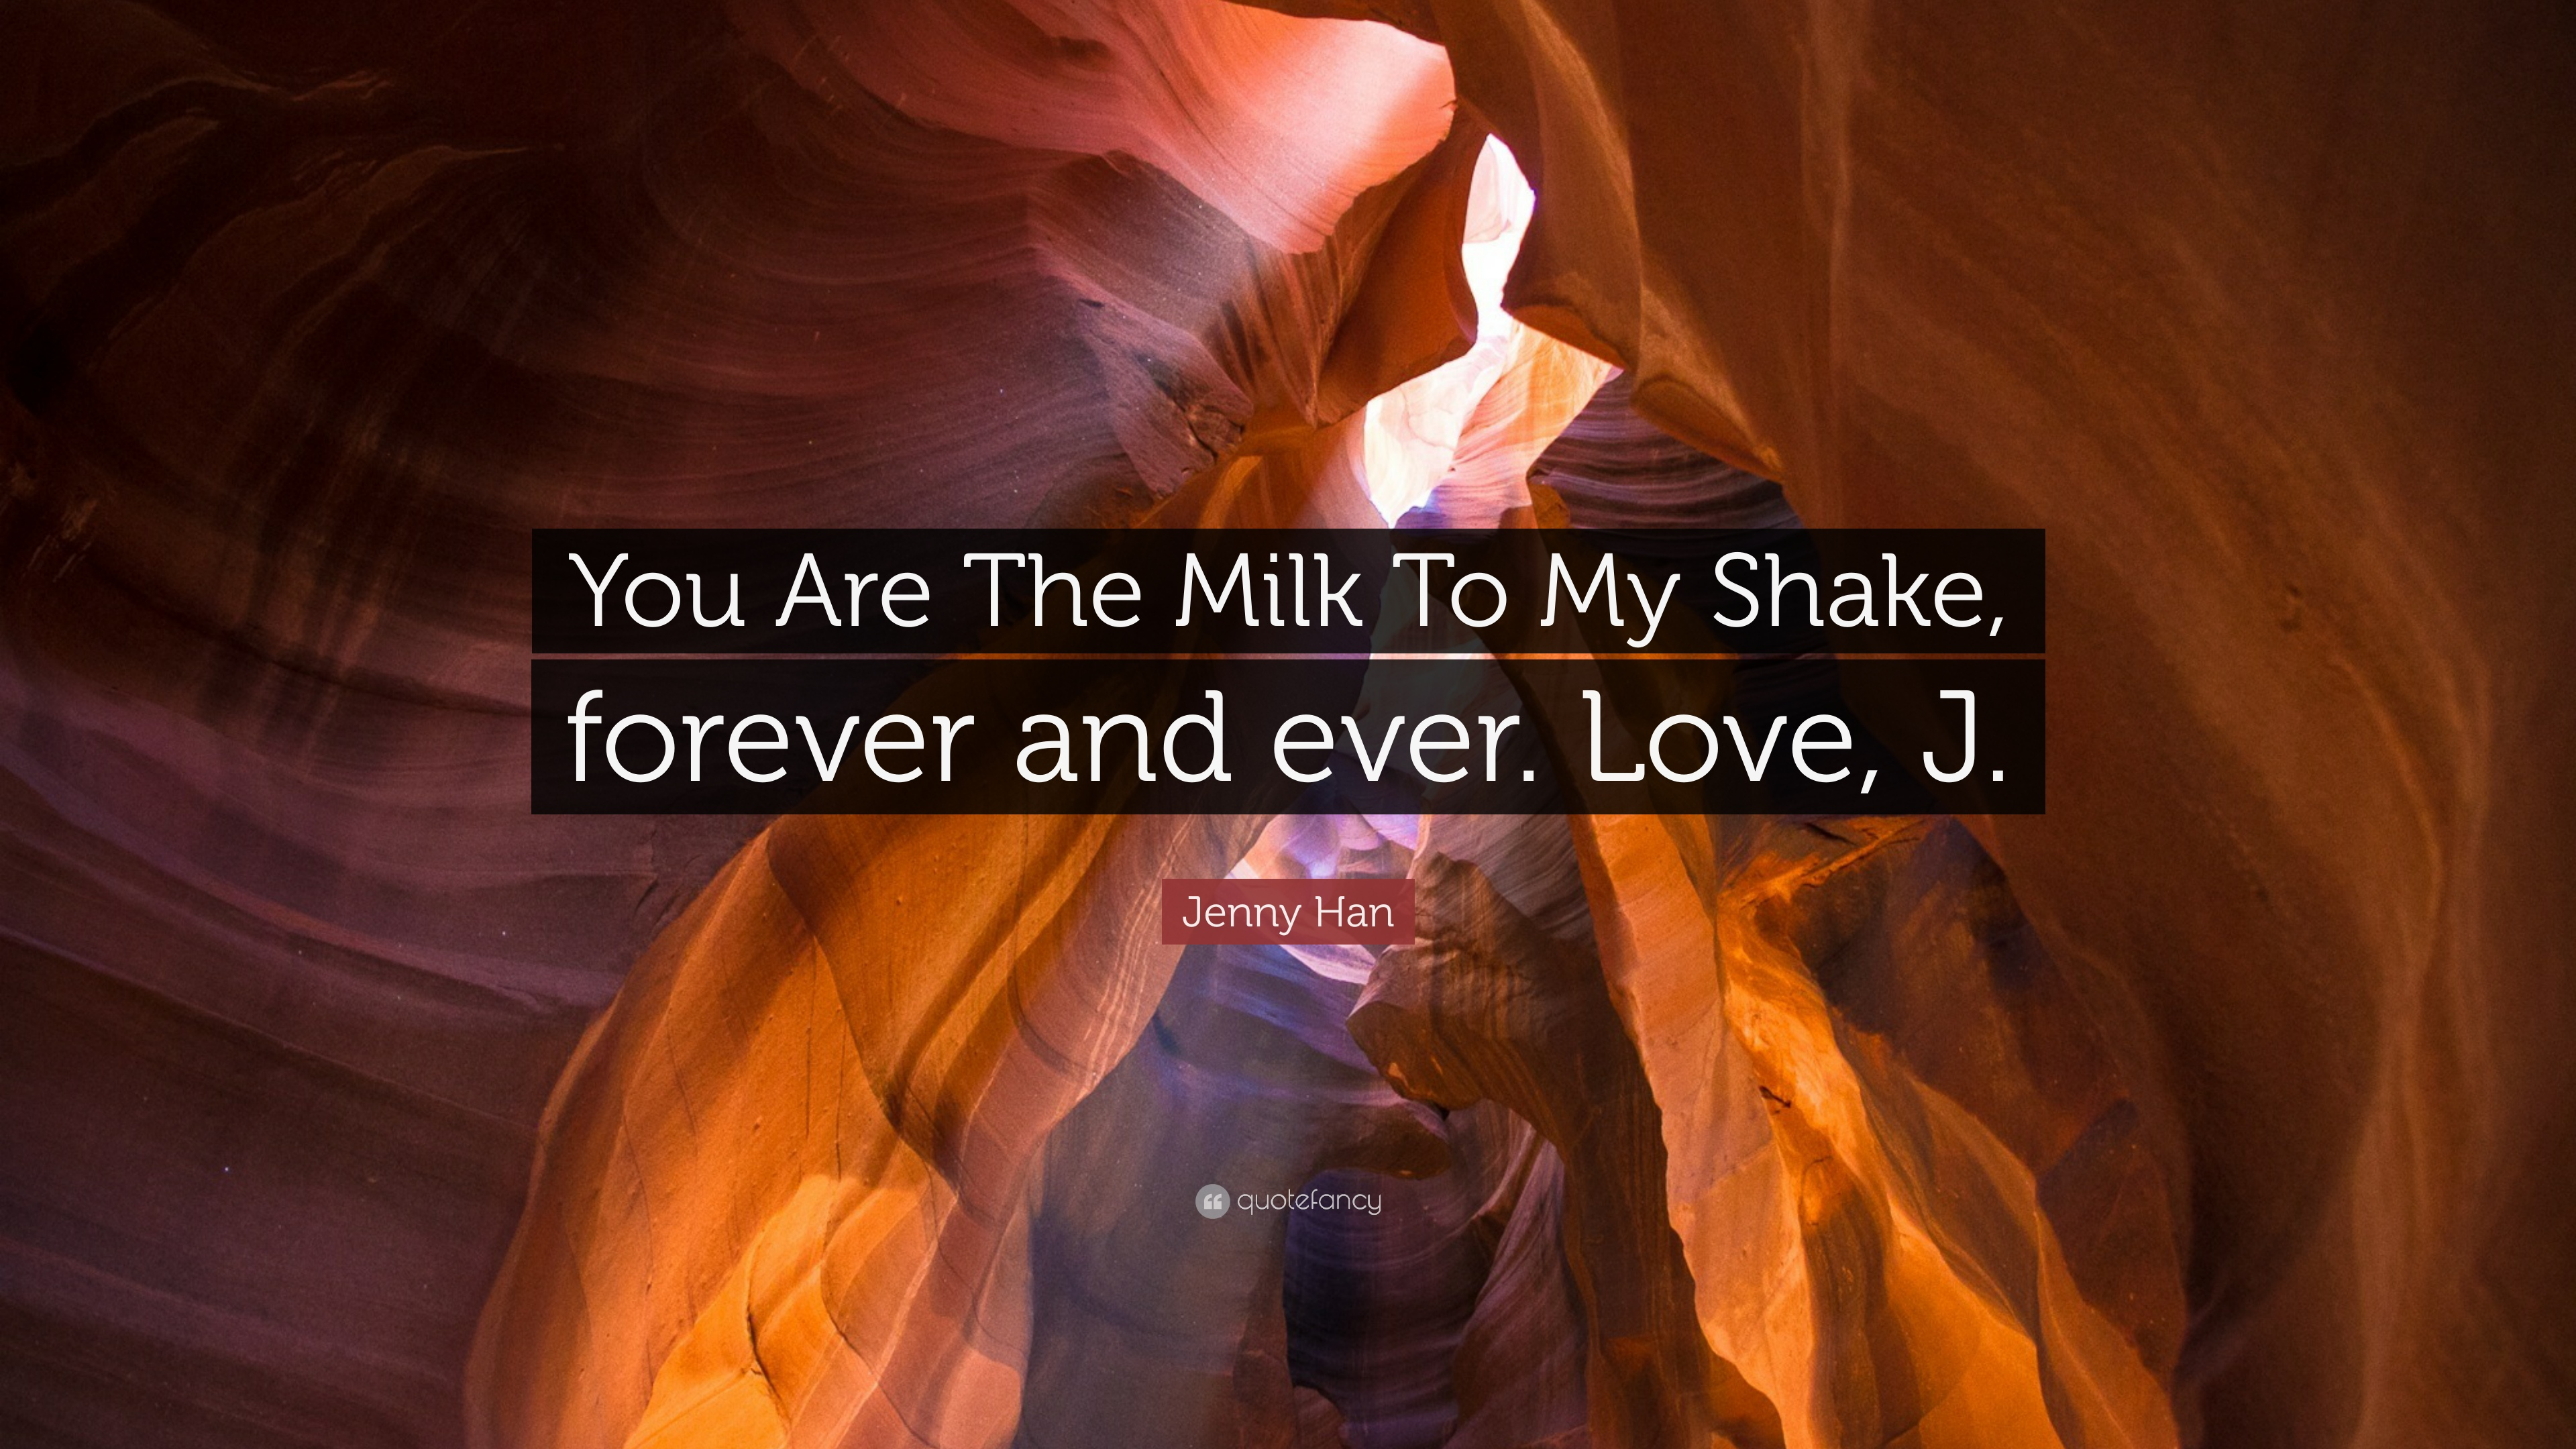 Jenny Han Quote You Are The Milk To My Shake Forever And Ever